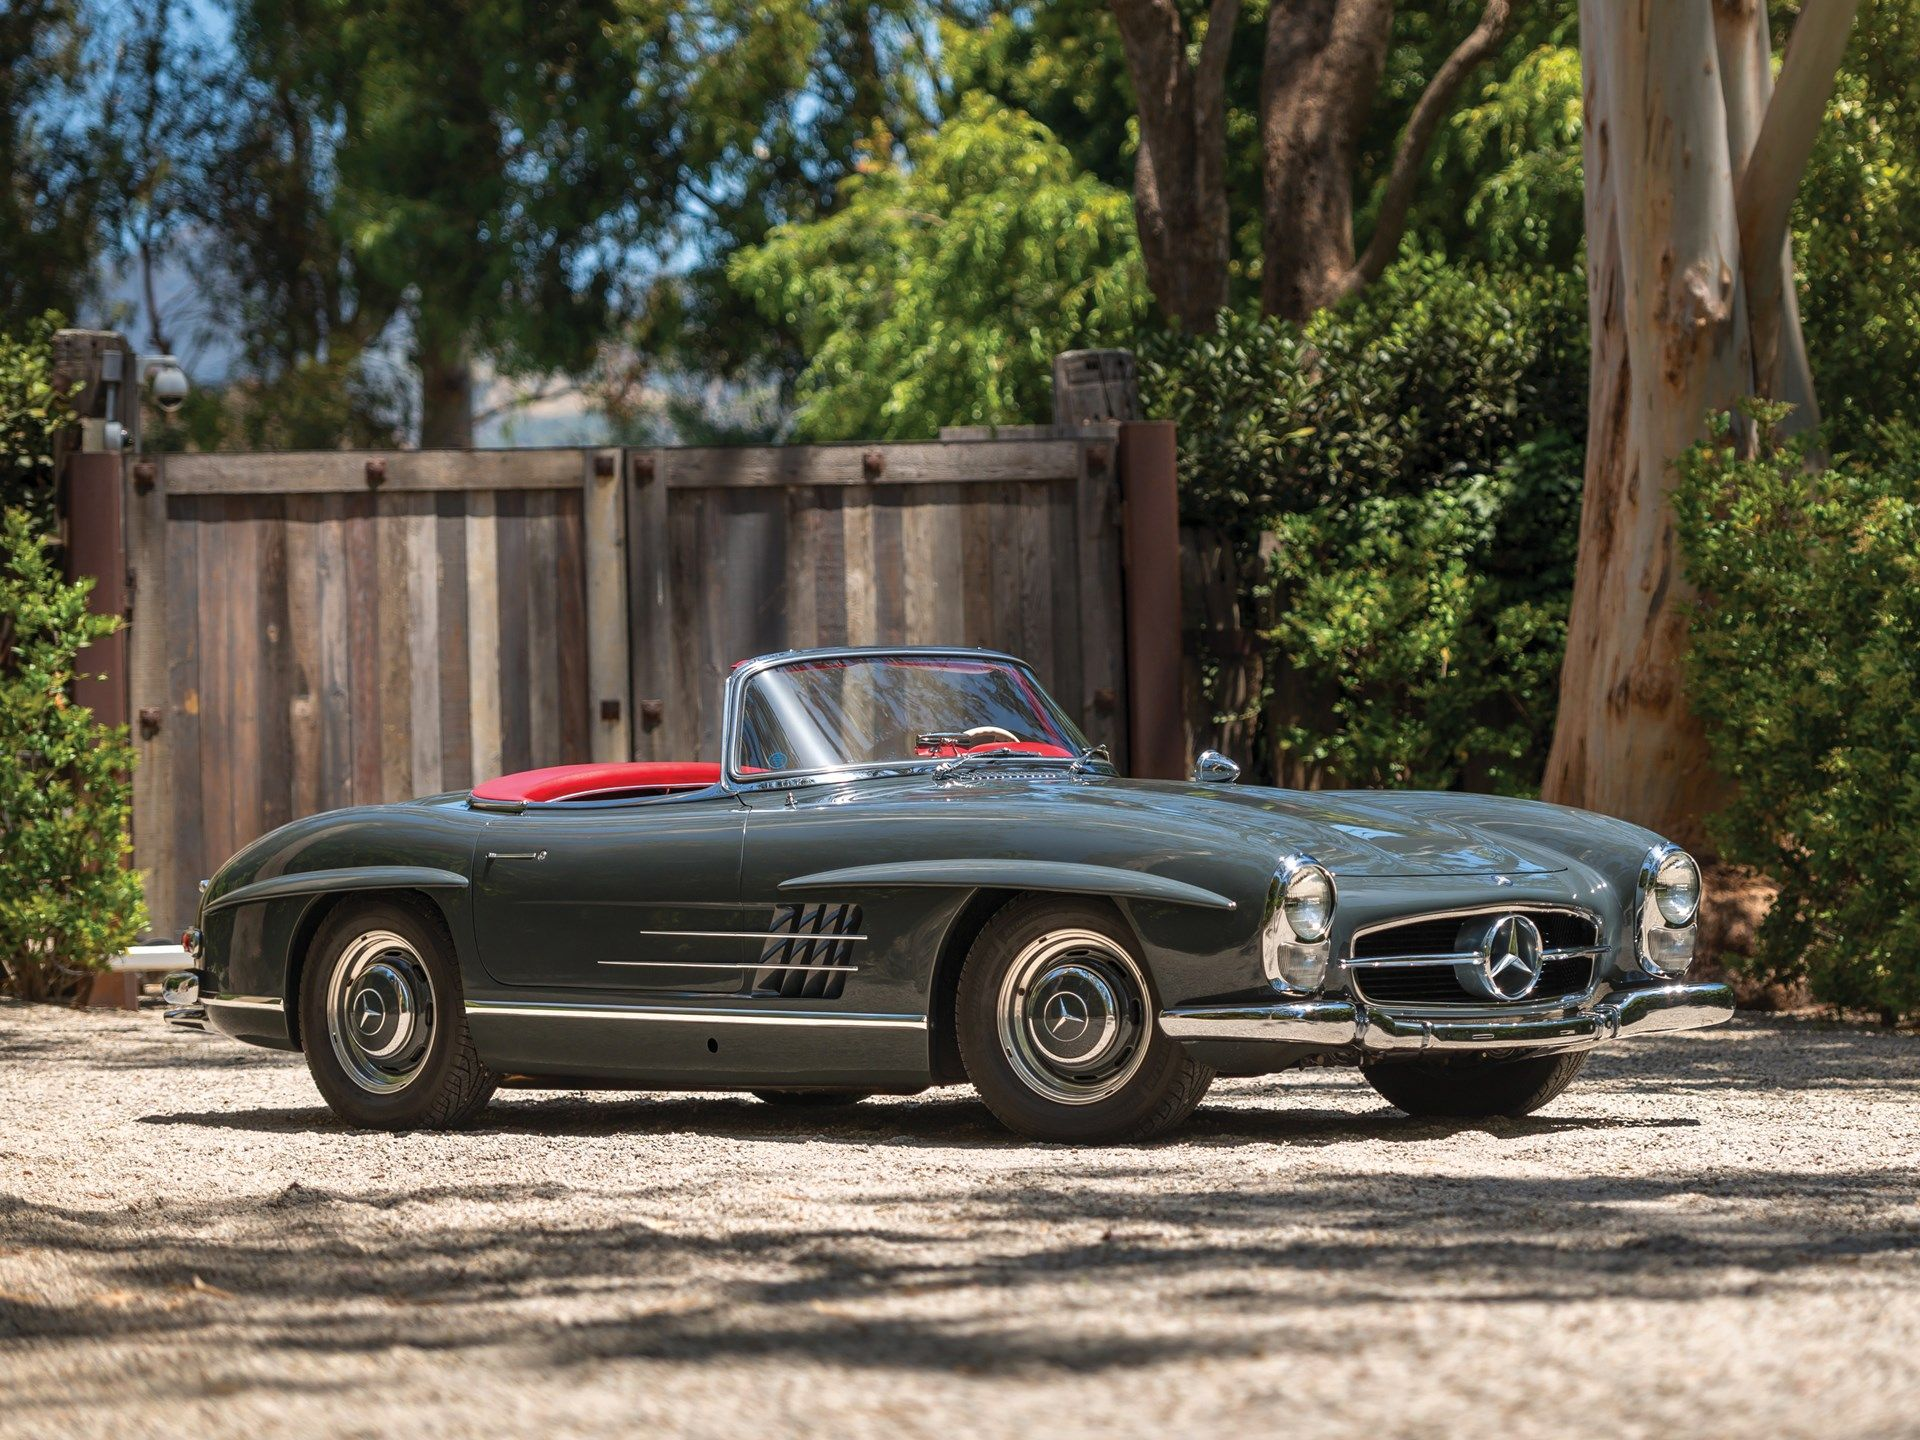 The Introduction Of The Mercedes Benz 300 Sl Was A Hugely Important Moment For Mercedes Benz And Served To Further Cement Mercedes Benz 300 Mercedes Benz Benz